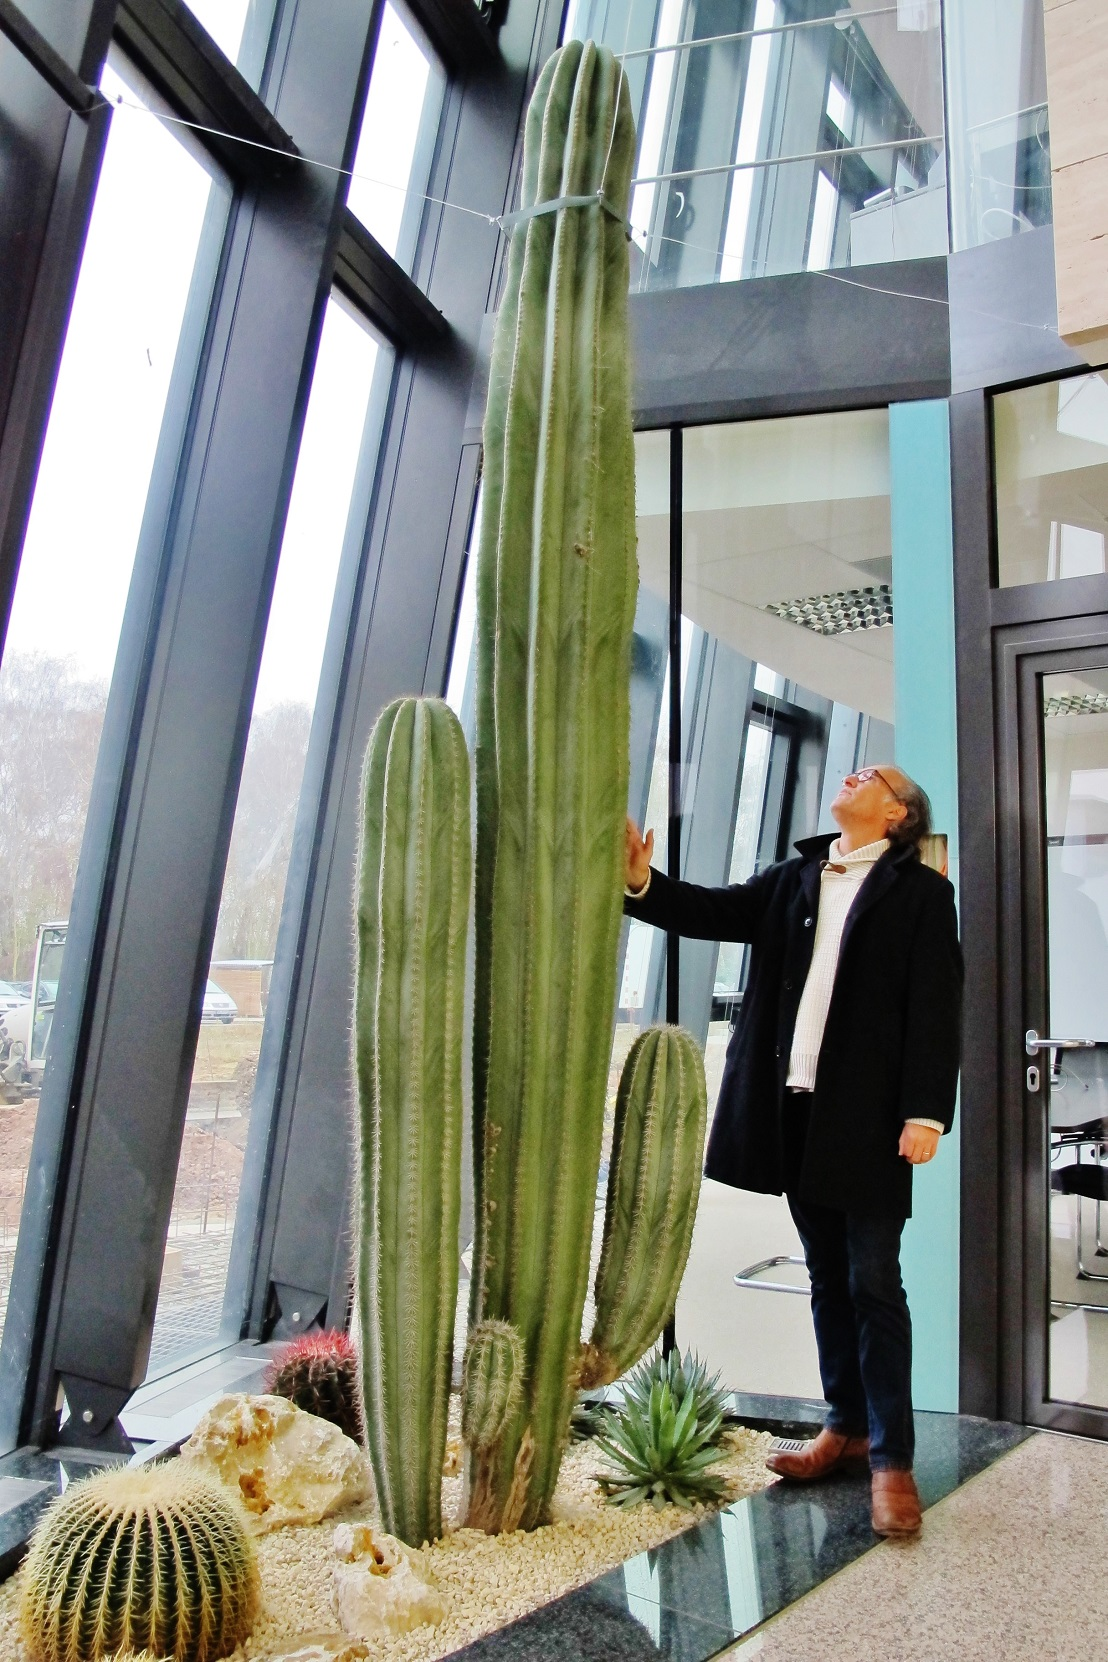 Pachycereus Pringlei - Cacti Cereus -  in the entrance of a group buy online